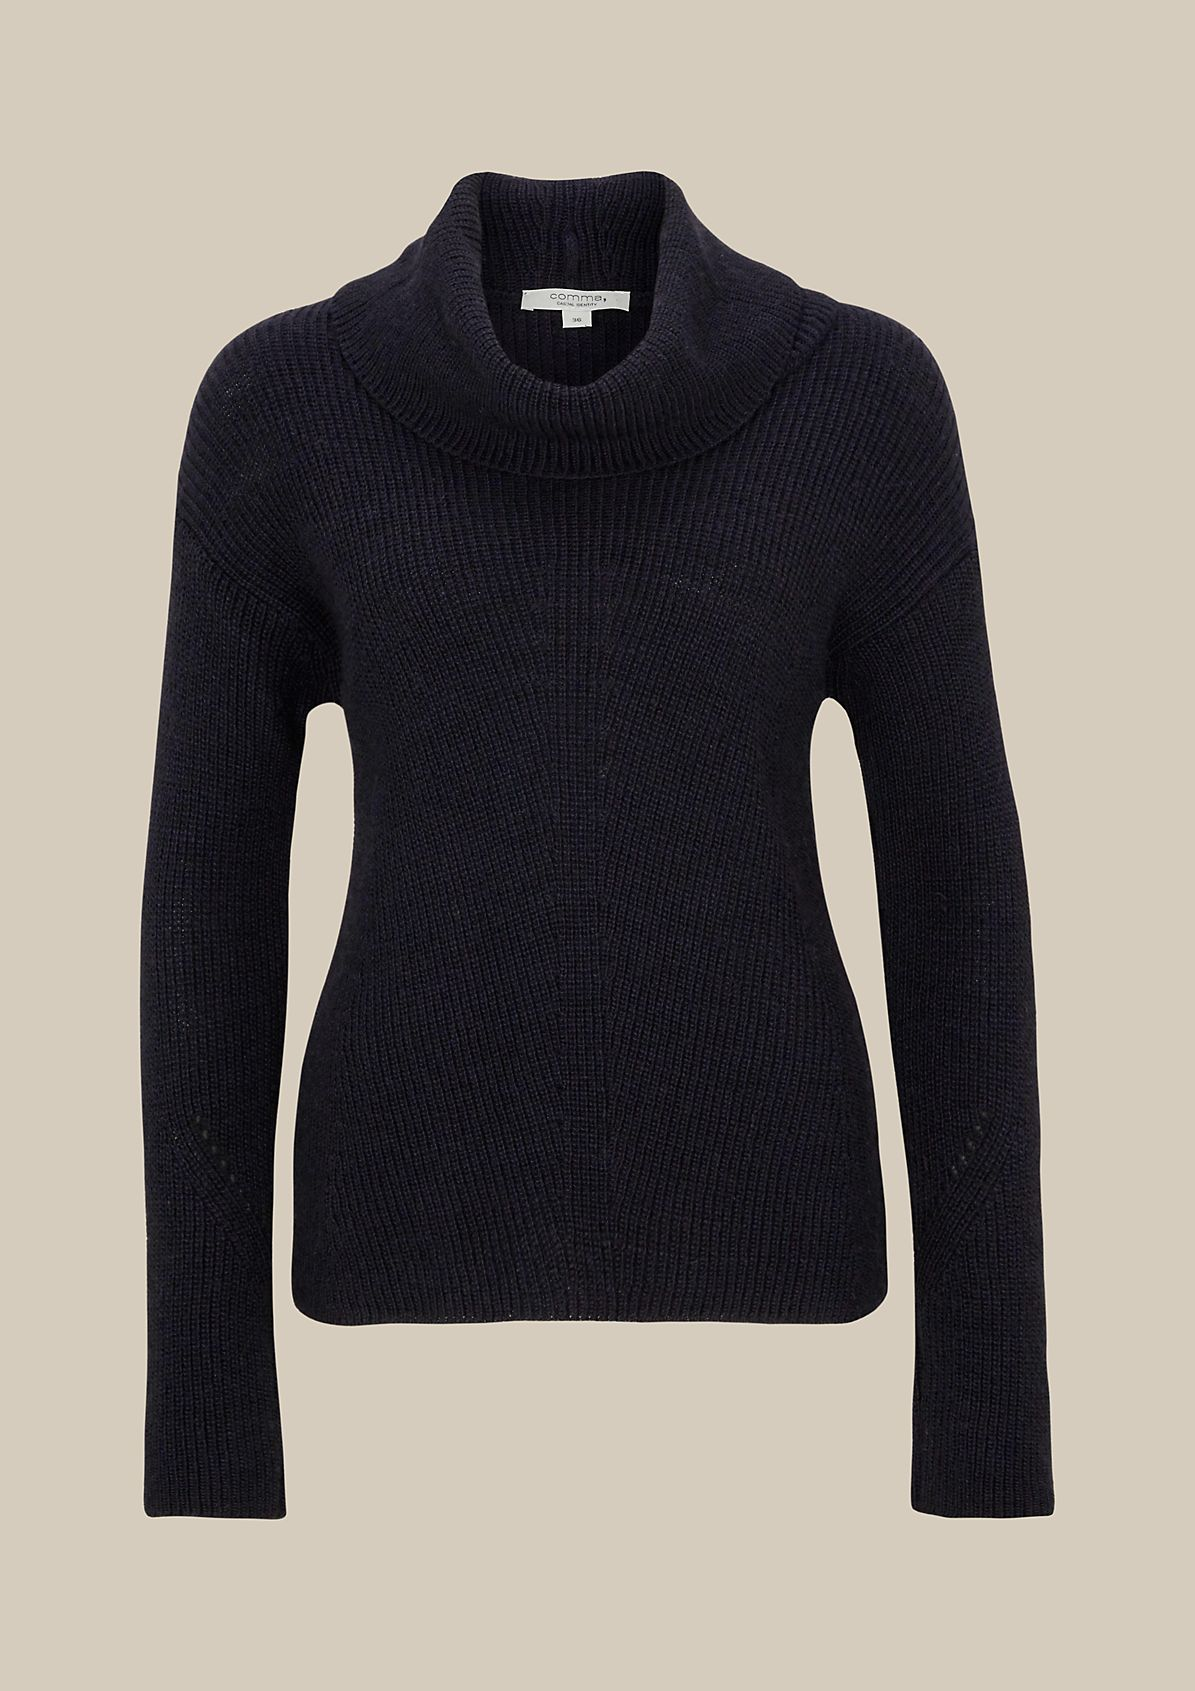 Cosy knit jumper with a high roll neck from s.Oliver